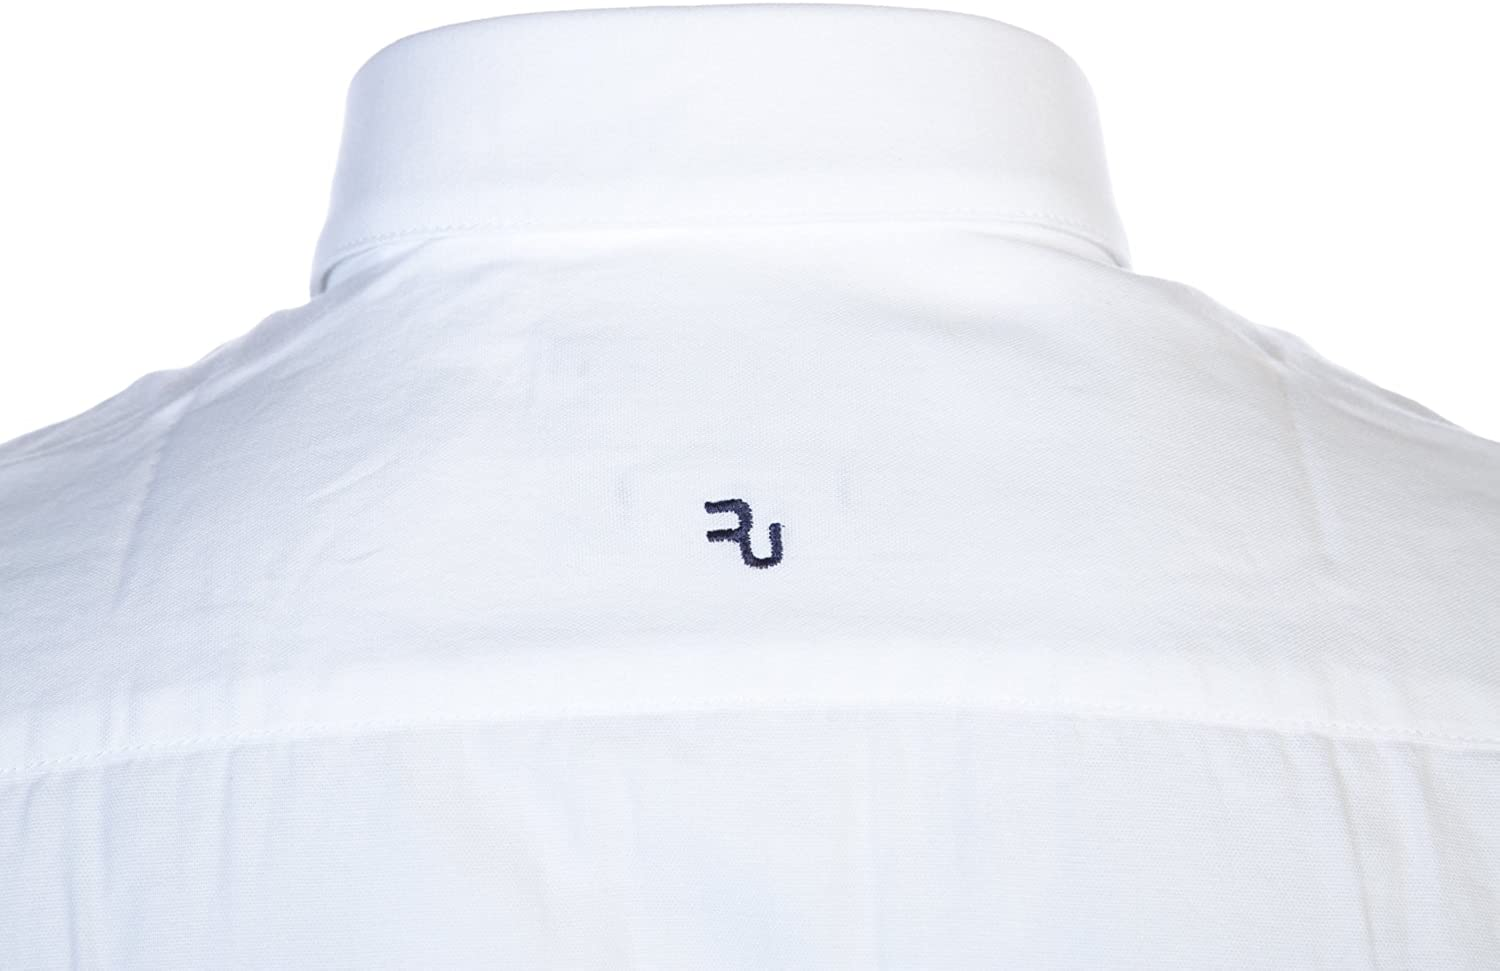 Remus Uomo Parker Shirt in White